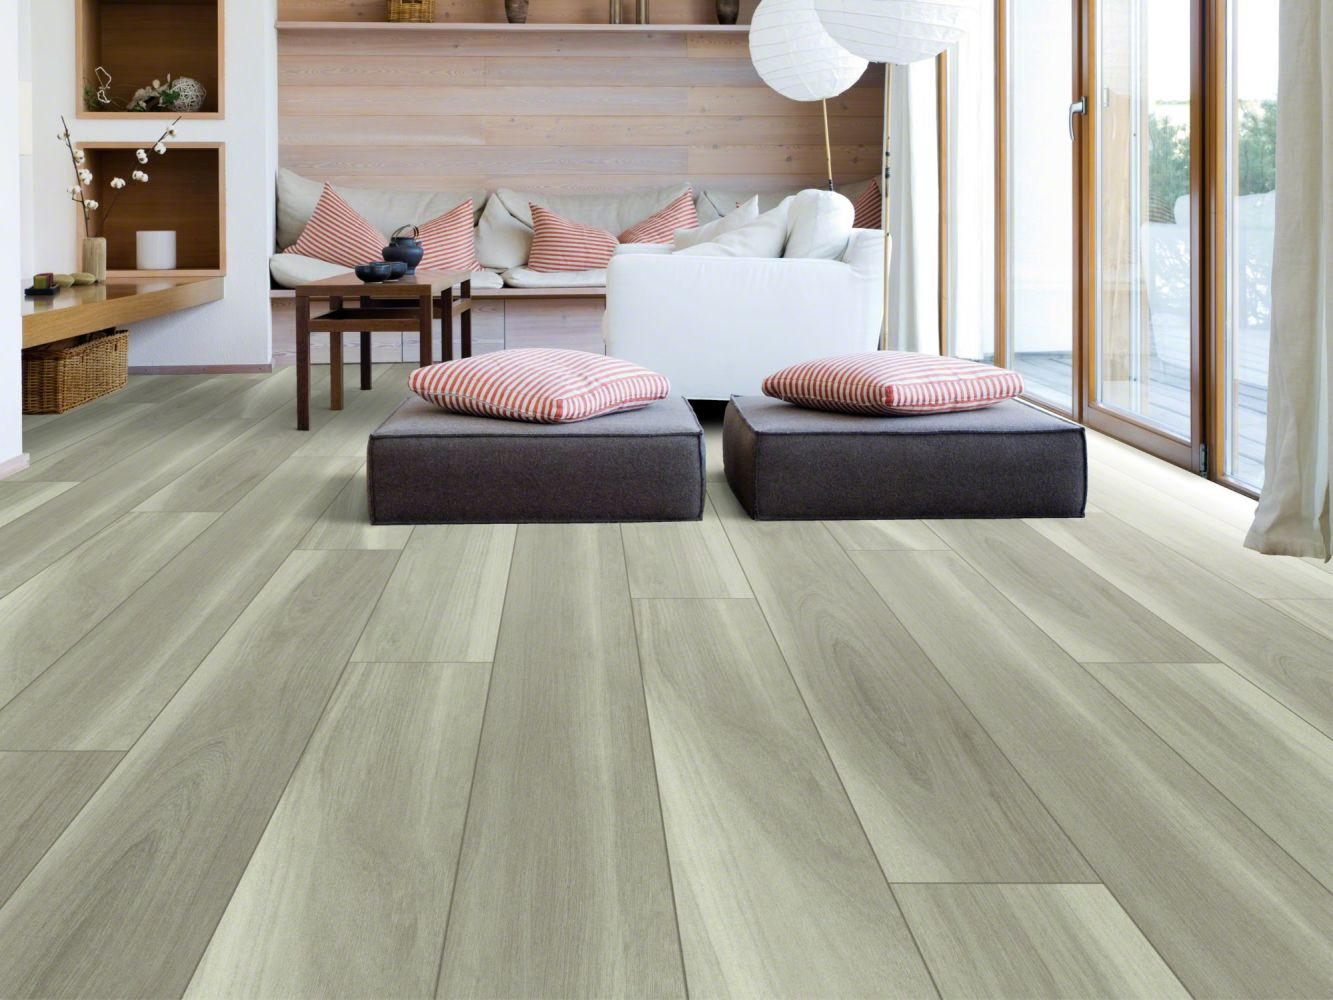 Shaw Floors Resilient Residential Intrepid HD Plus Misty Oak 05008_2024V